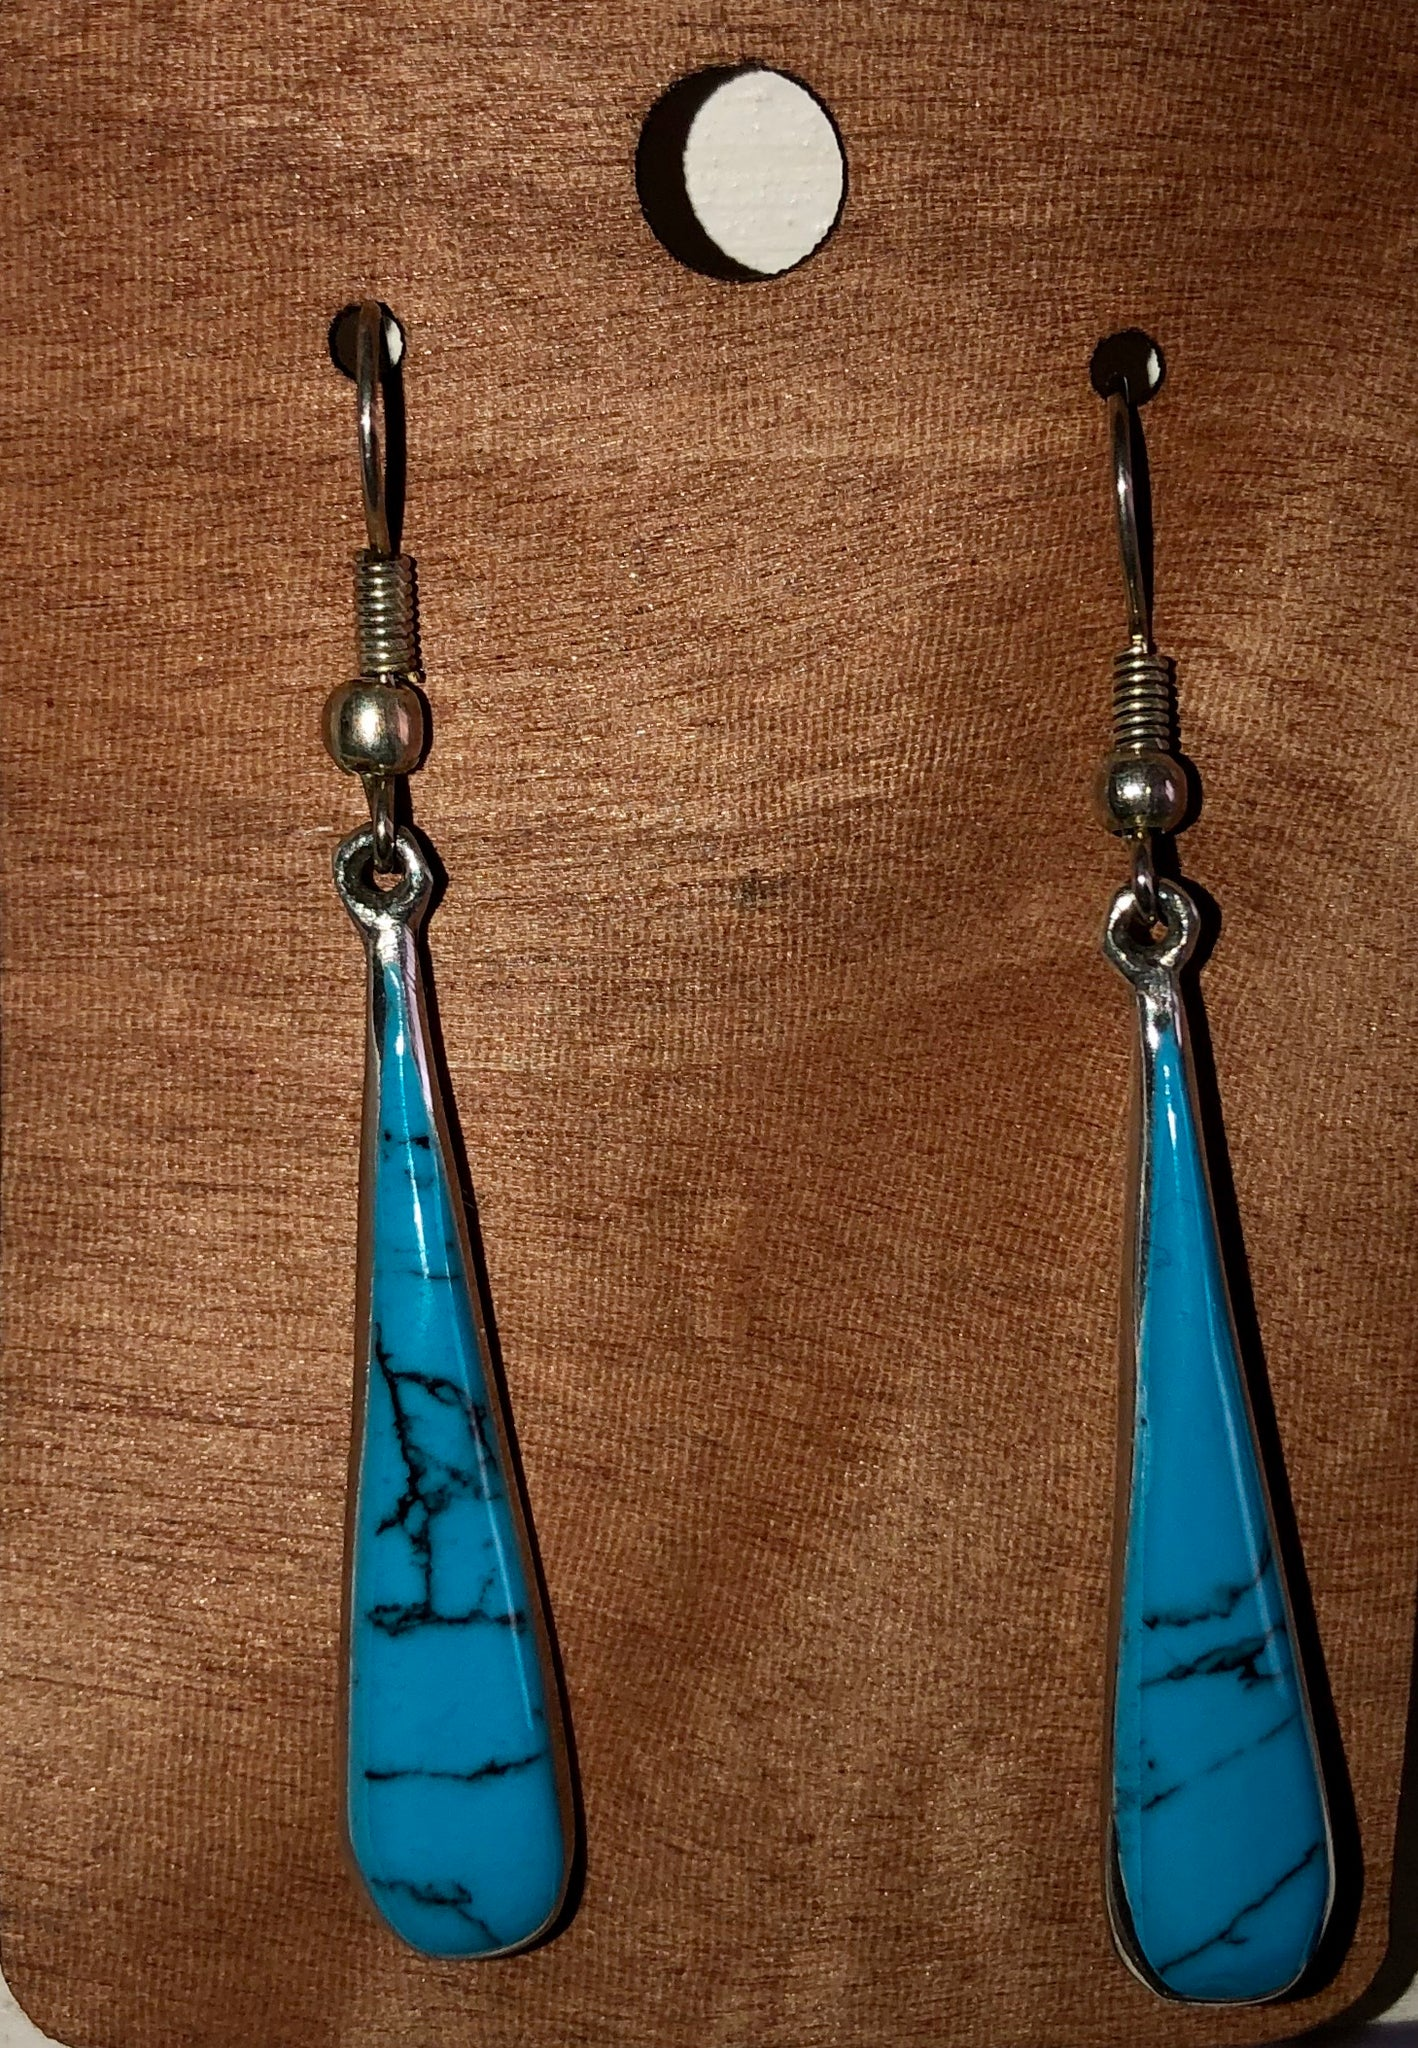 Turquoise Fair Trade earrings. Hand crafted. Taxco, Mexico